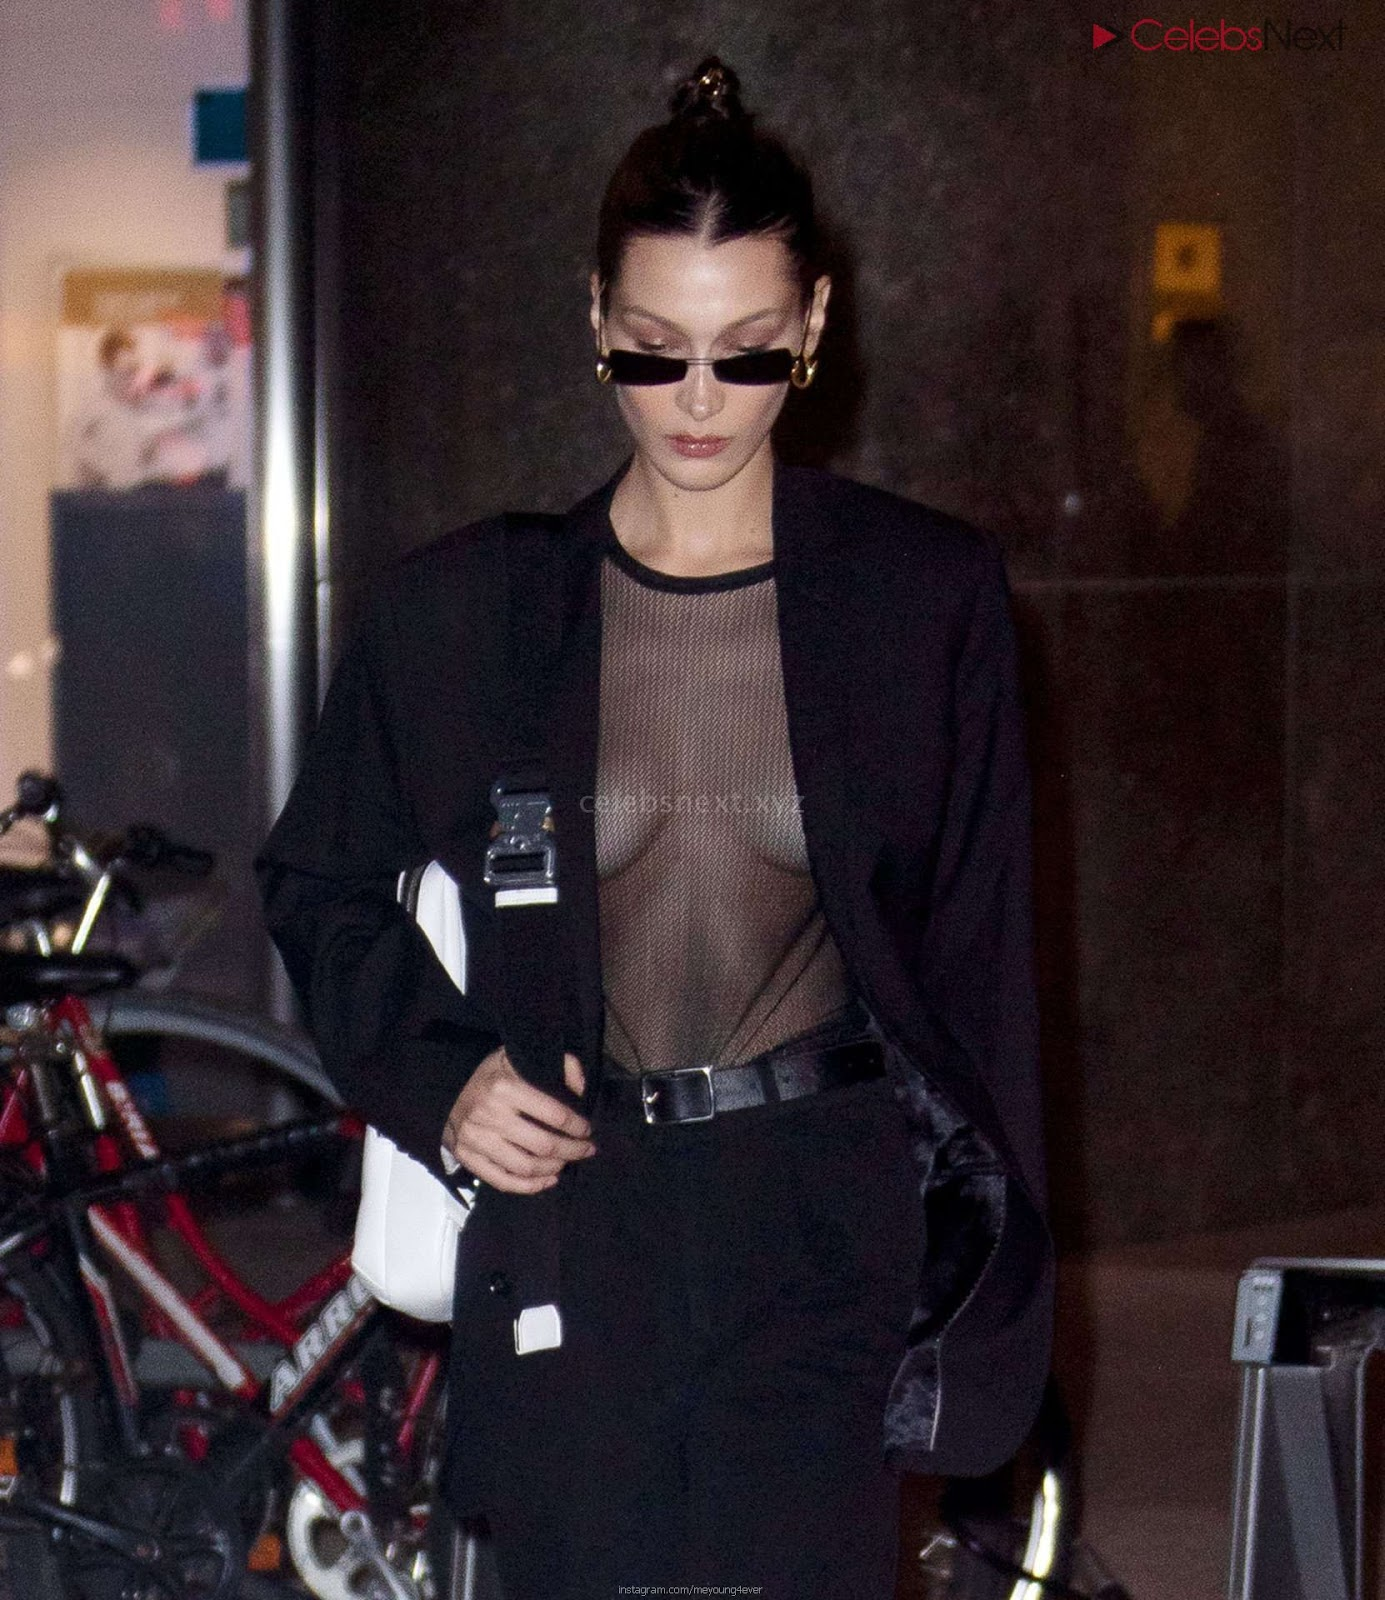 Bella Hadid boobs exposed in transparent  T shirt Bra kess boobs CEleBrityBooty.co Exclusive